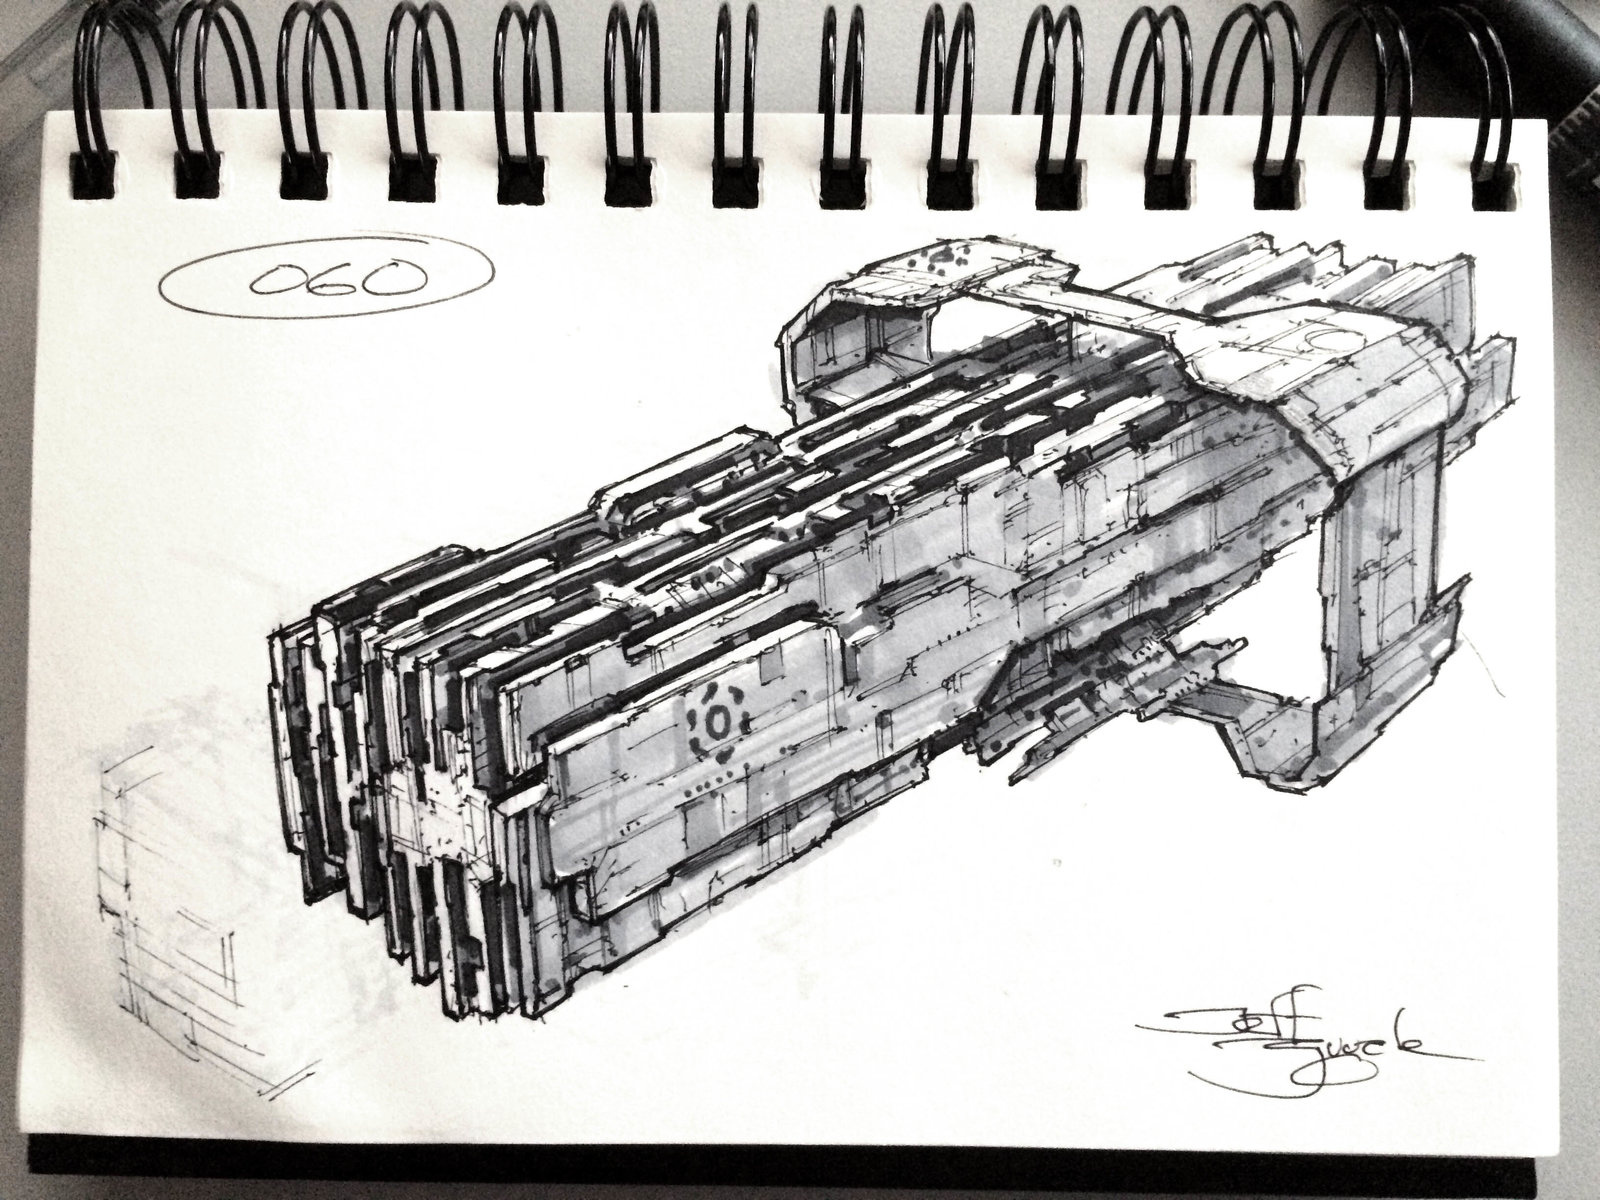 SpaceshipADay 060